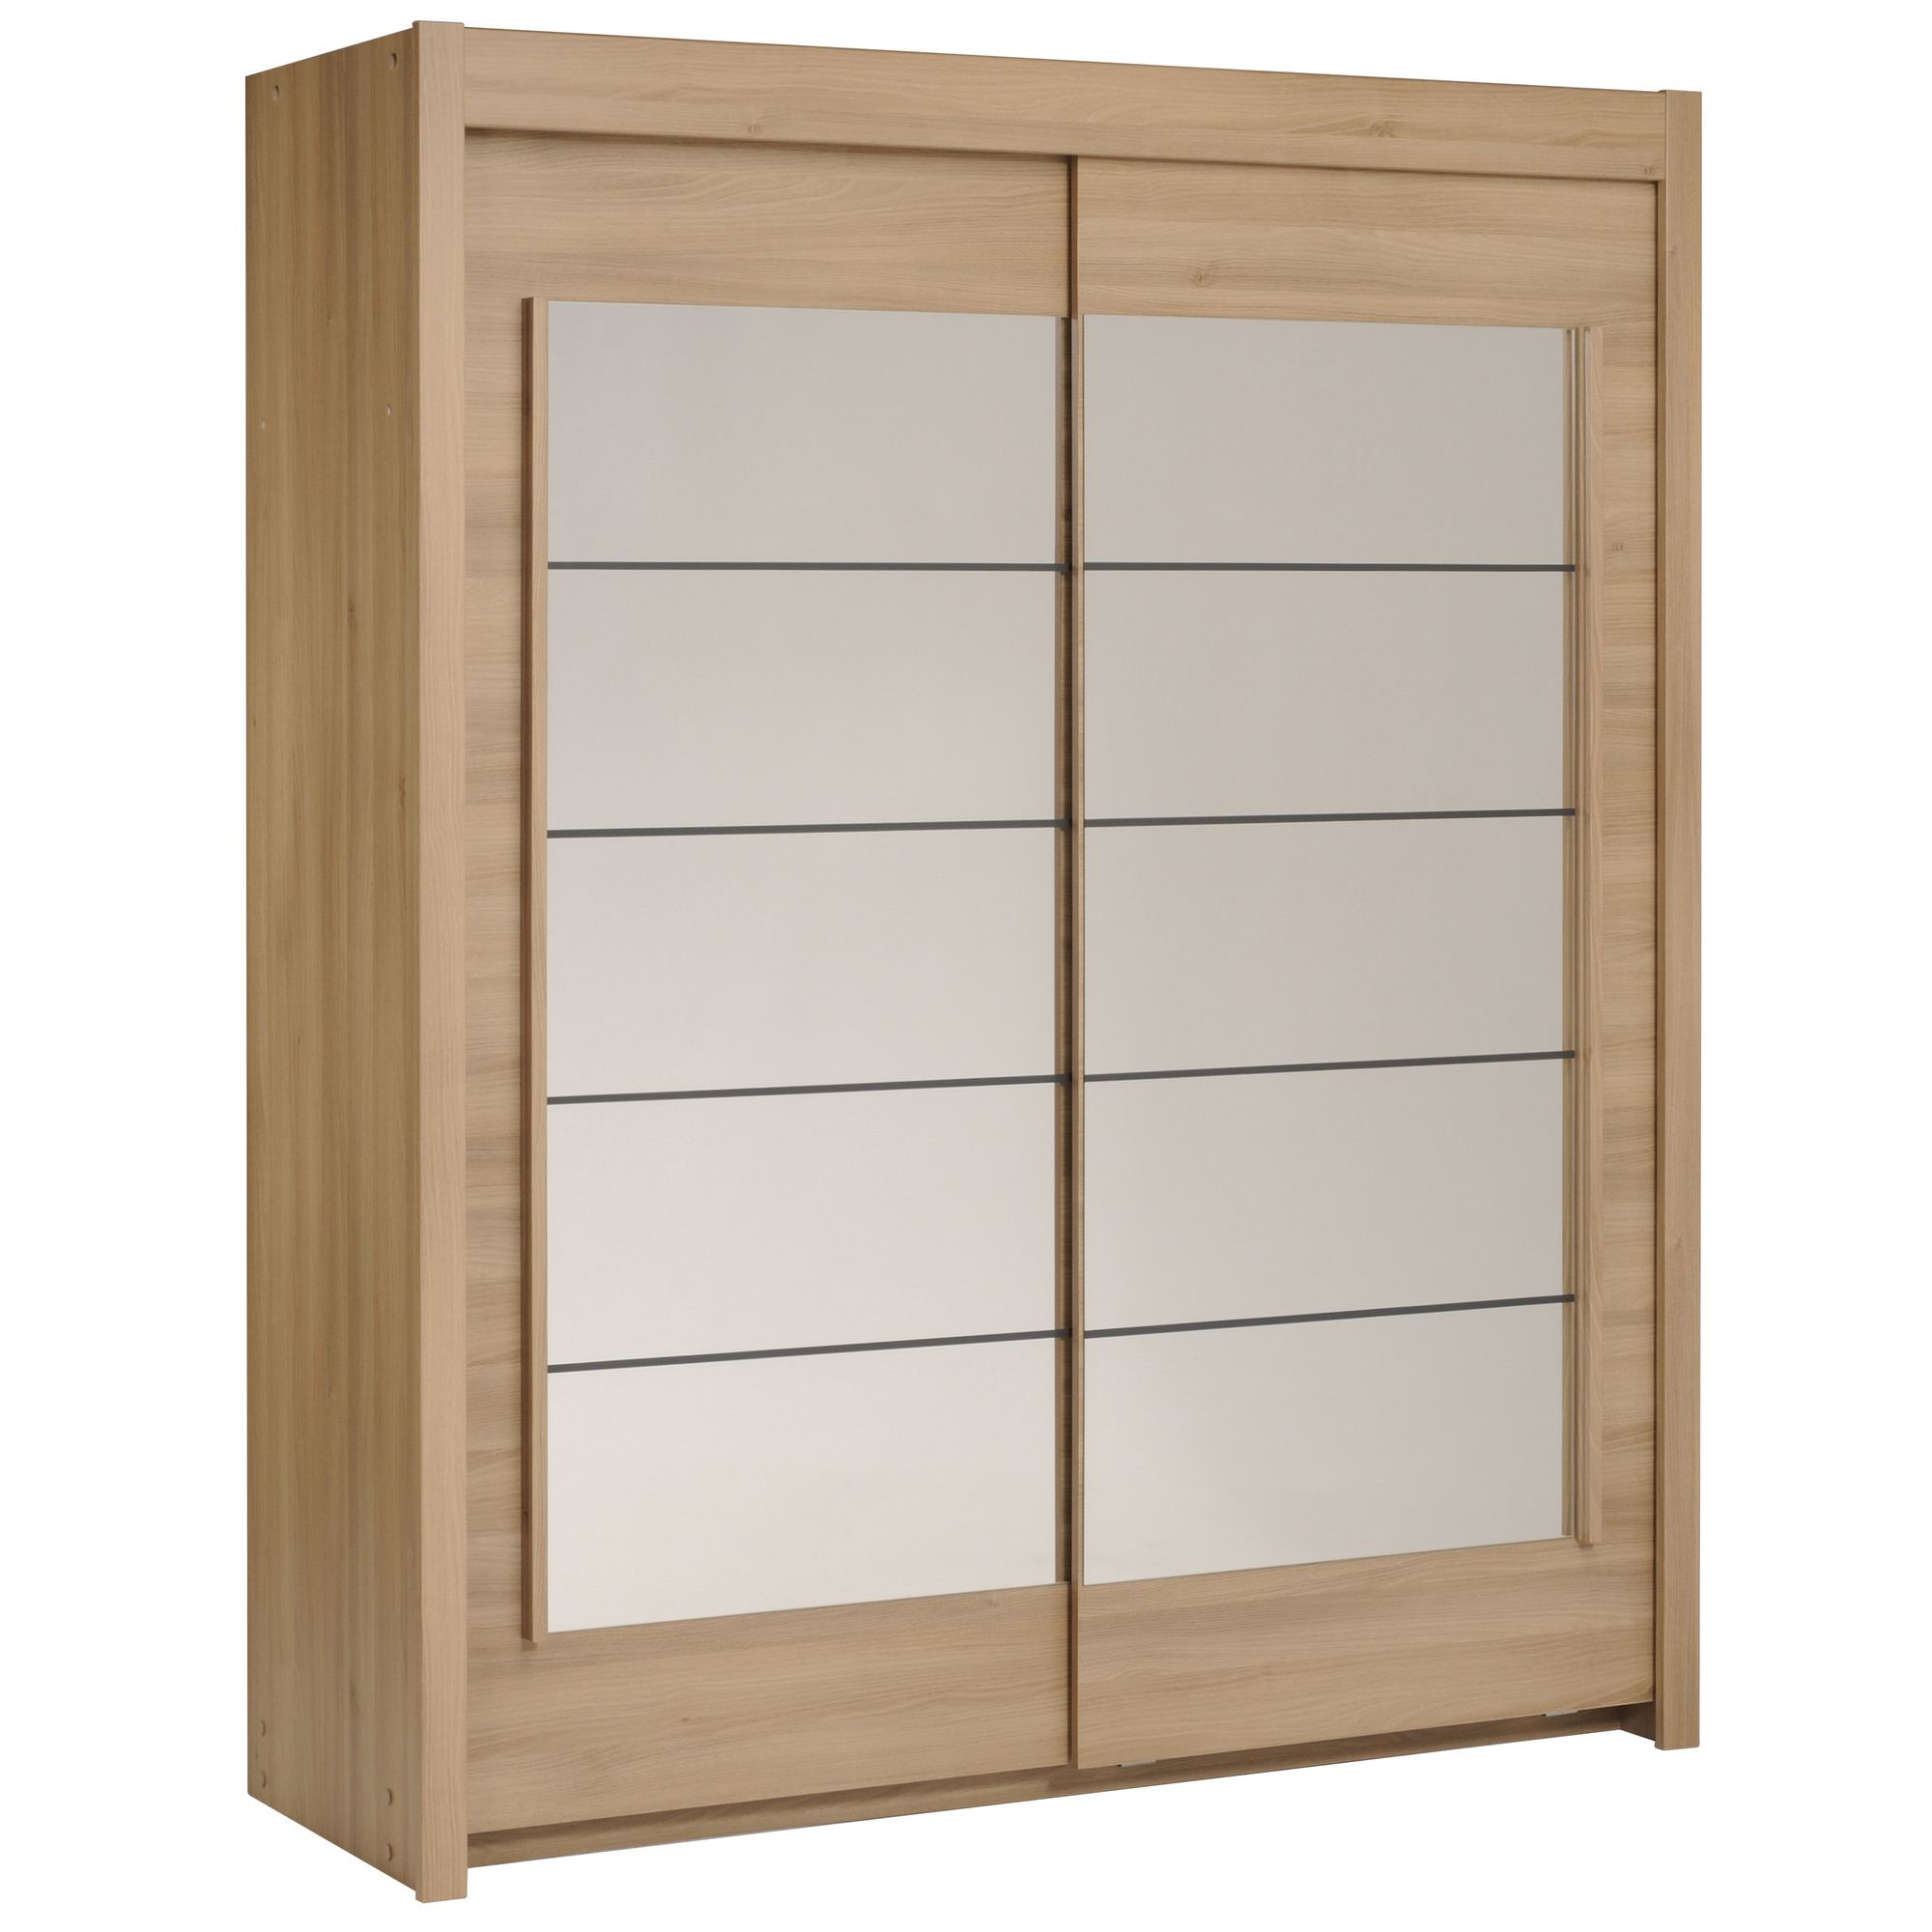 Parisot Split Wardrobe - Smoked Acacia at Tesco Direct